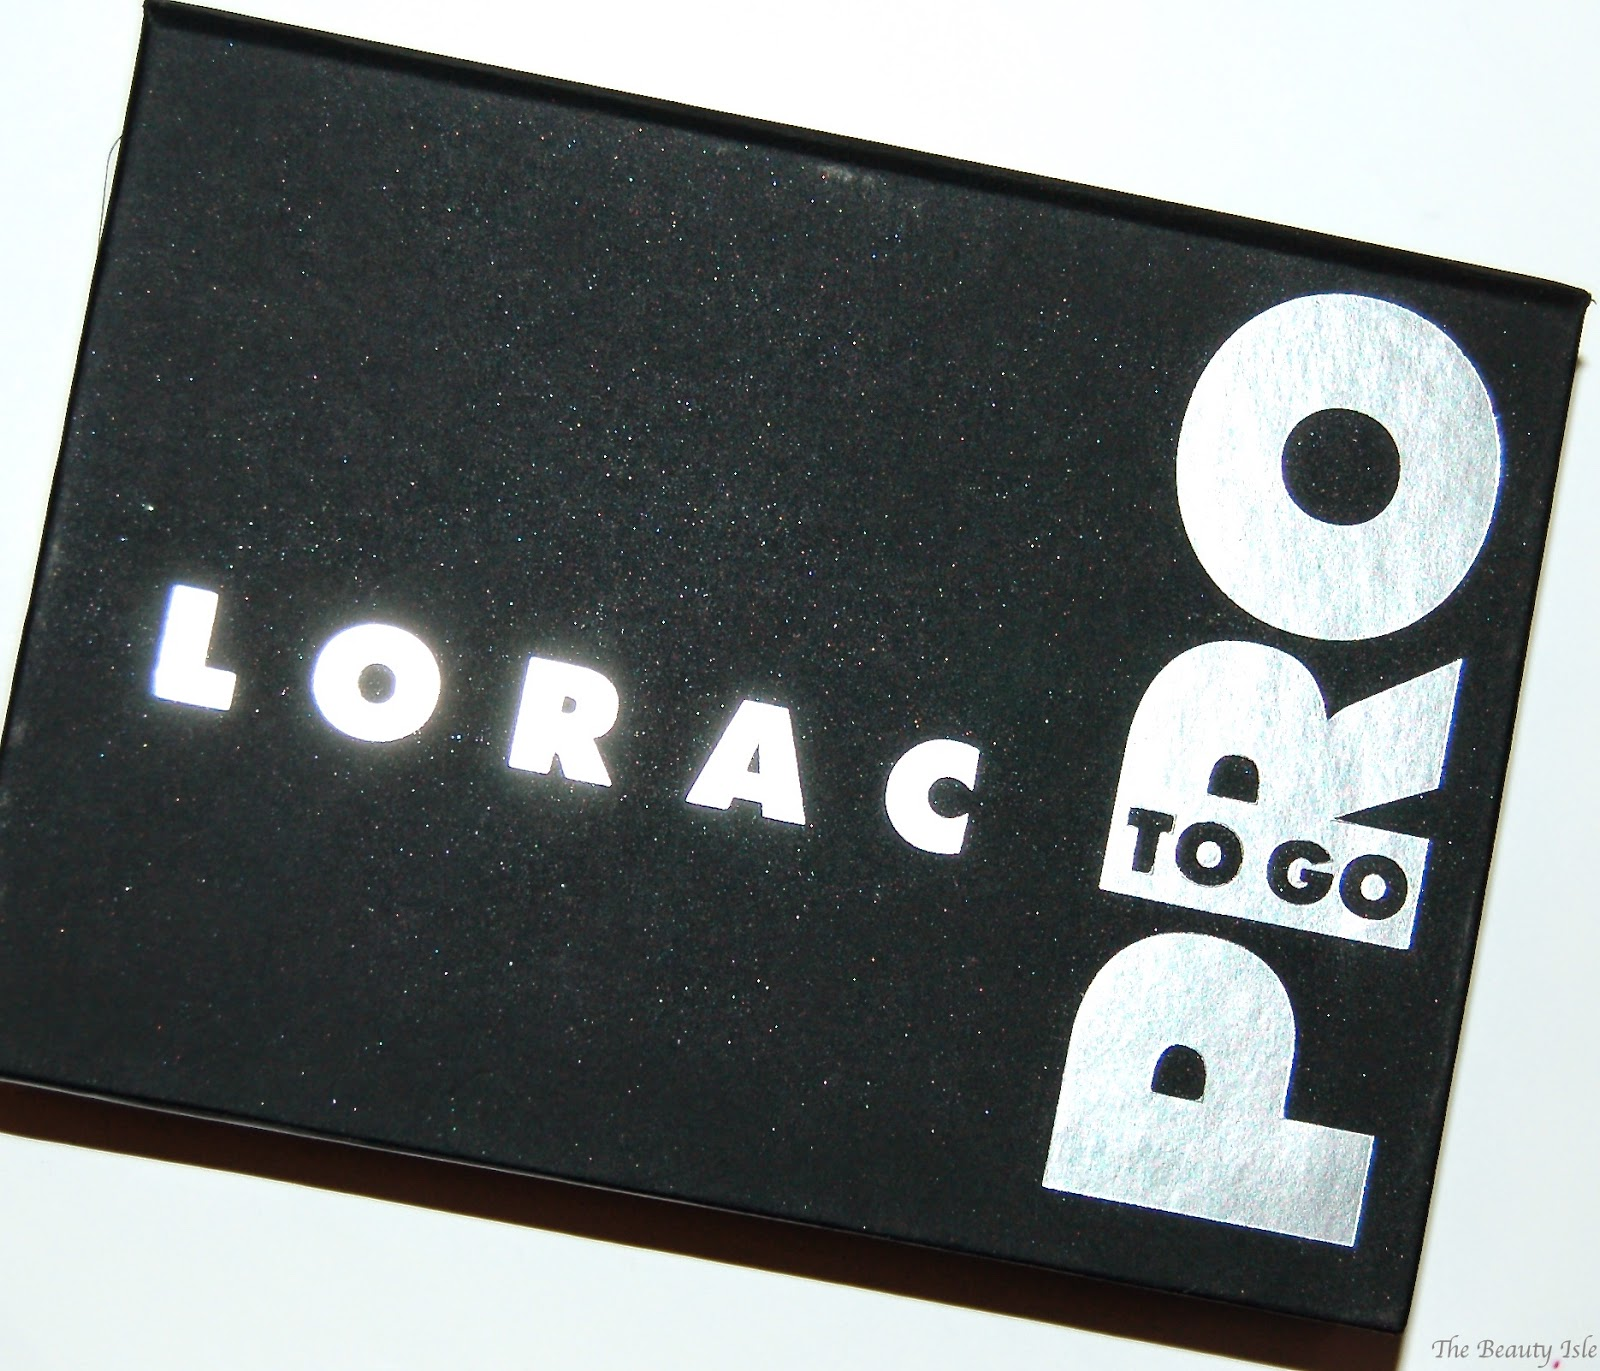 Lorac Pro To Go Eye/Cheek Palette